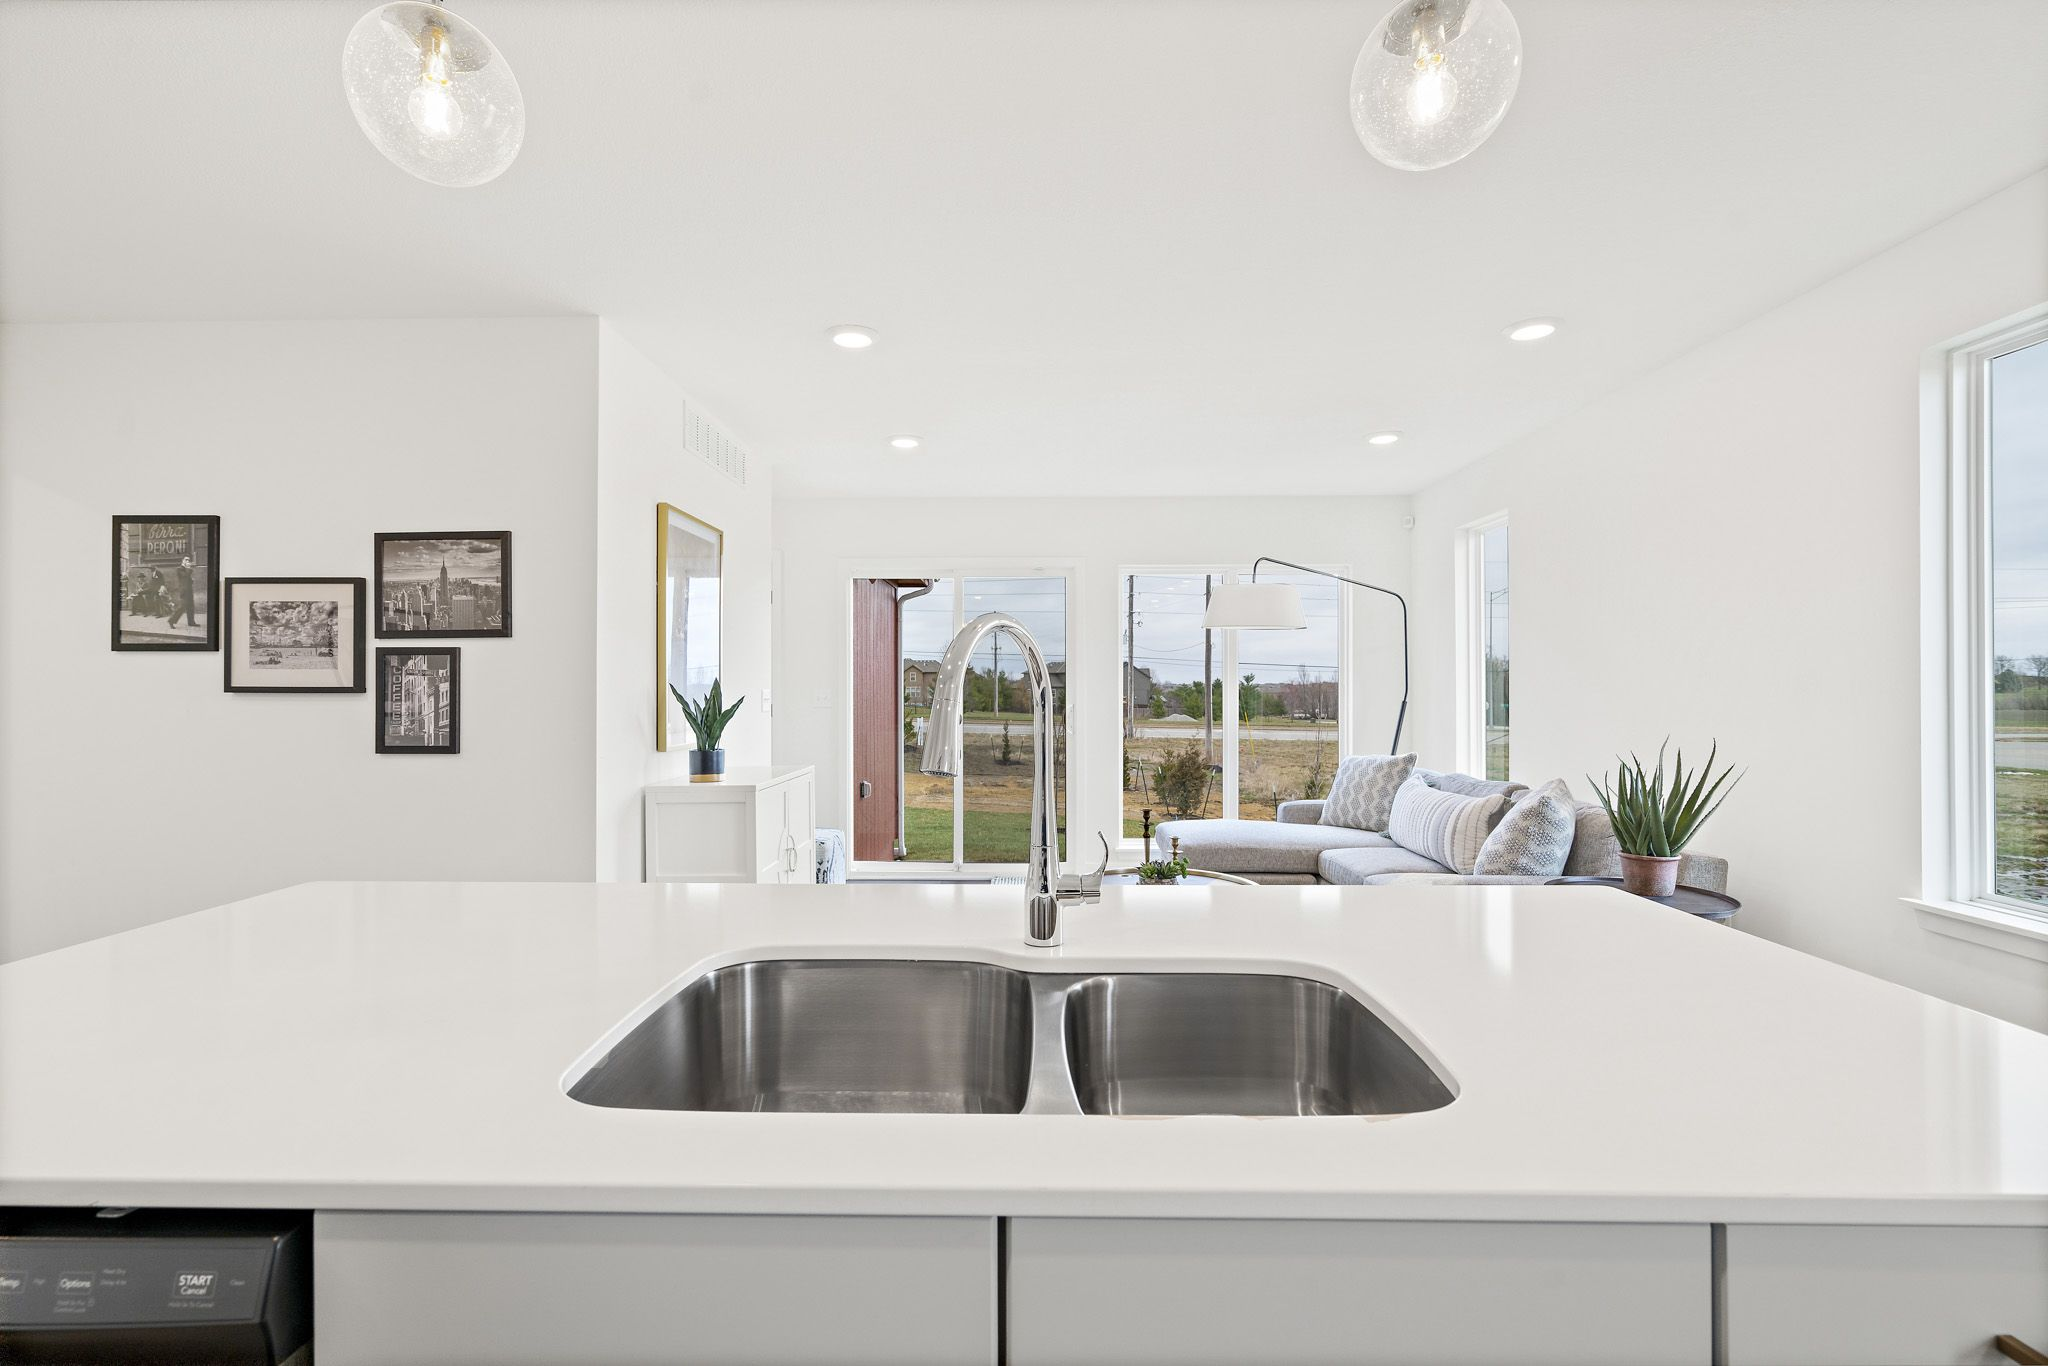 Kitchen featured in the sapphire By clover & hive in Kansas City, MO